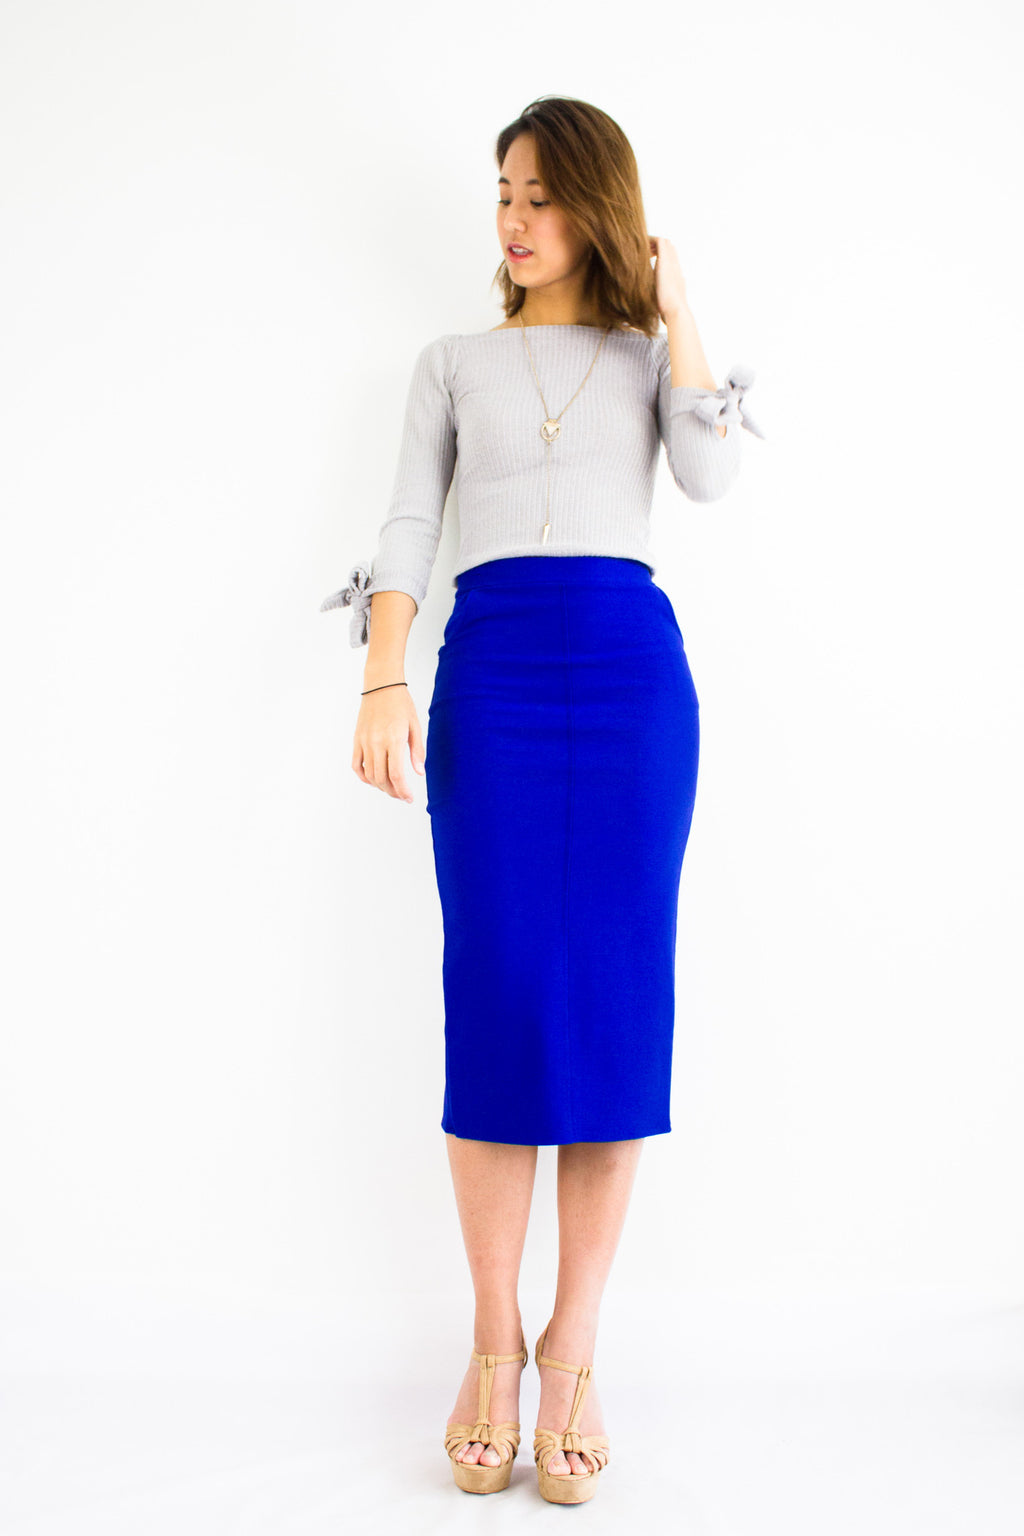 Pocketful Fitted Midi Skirt in Bright Blue - BOTTOMS - Peep Boutique